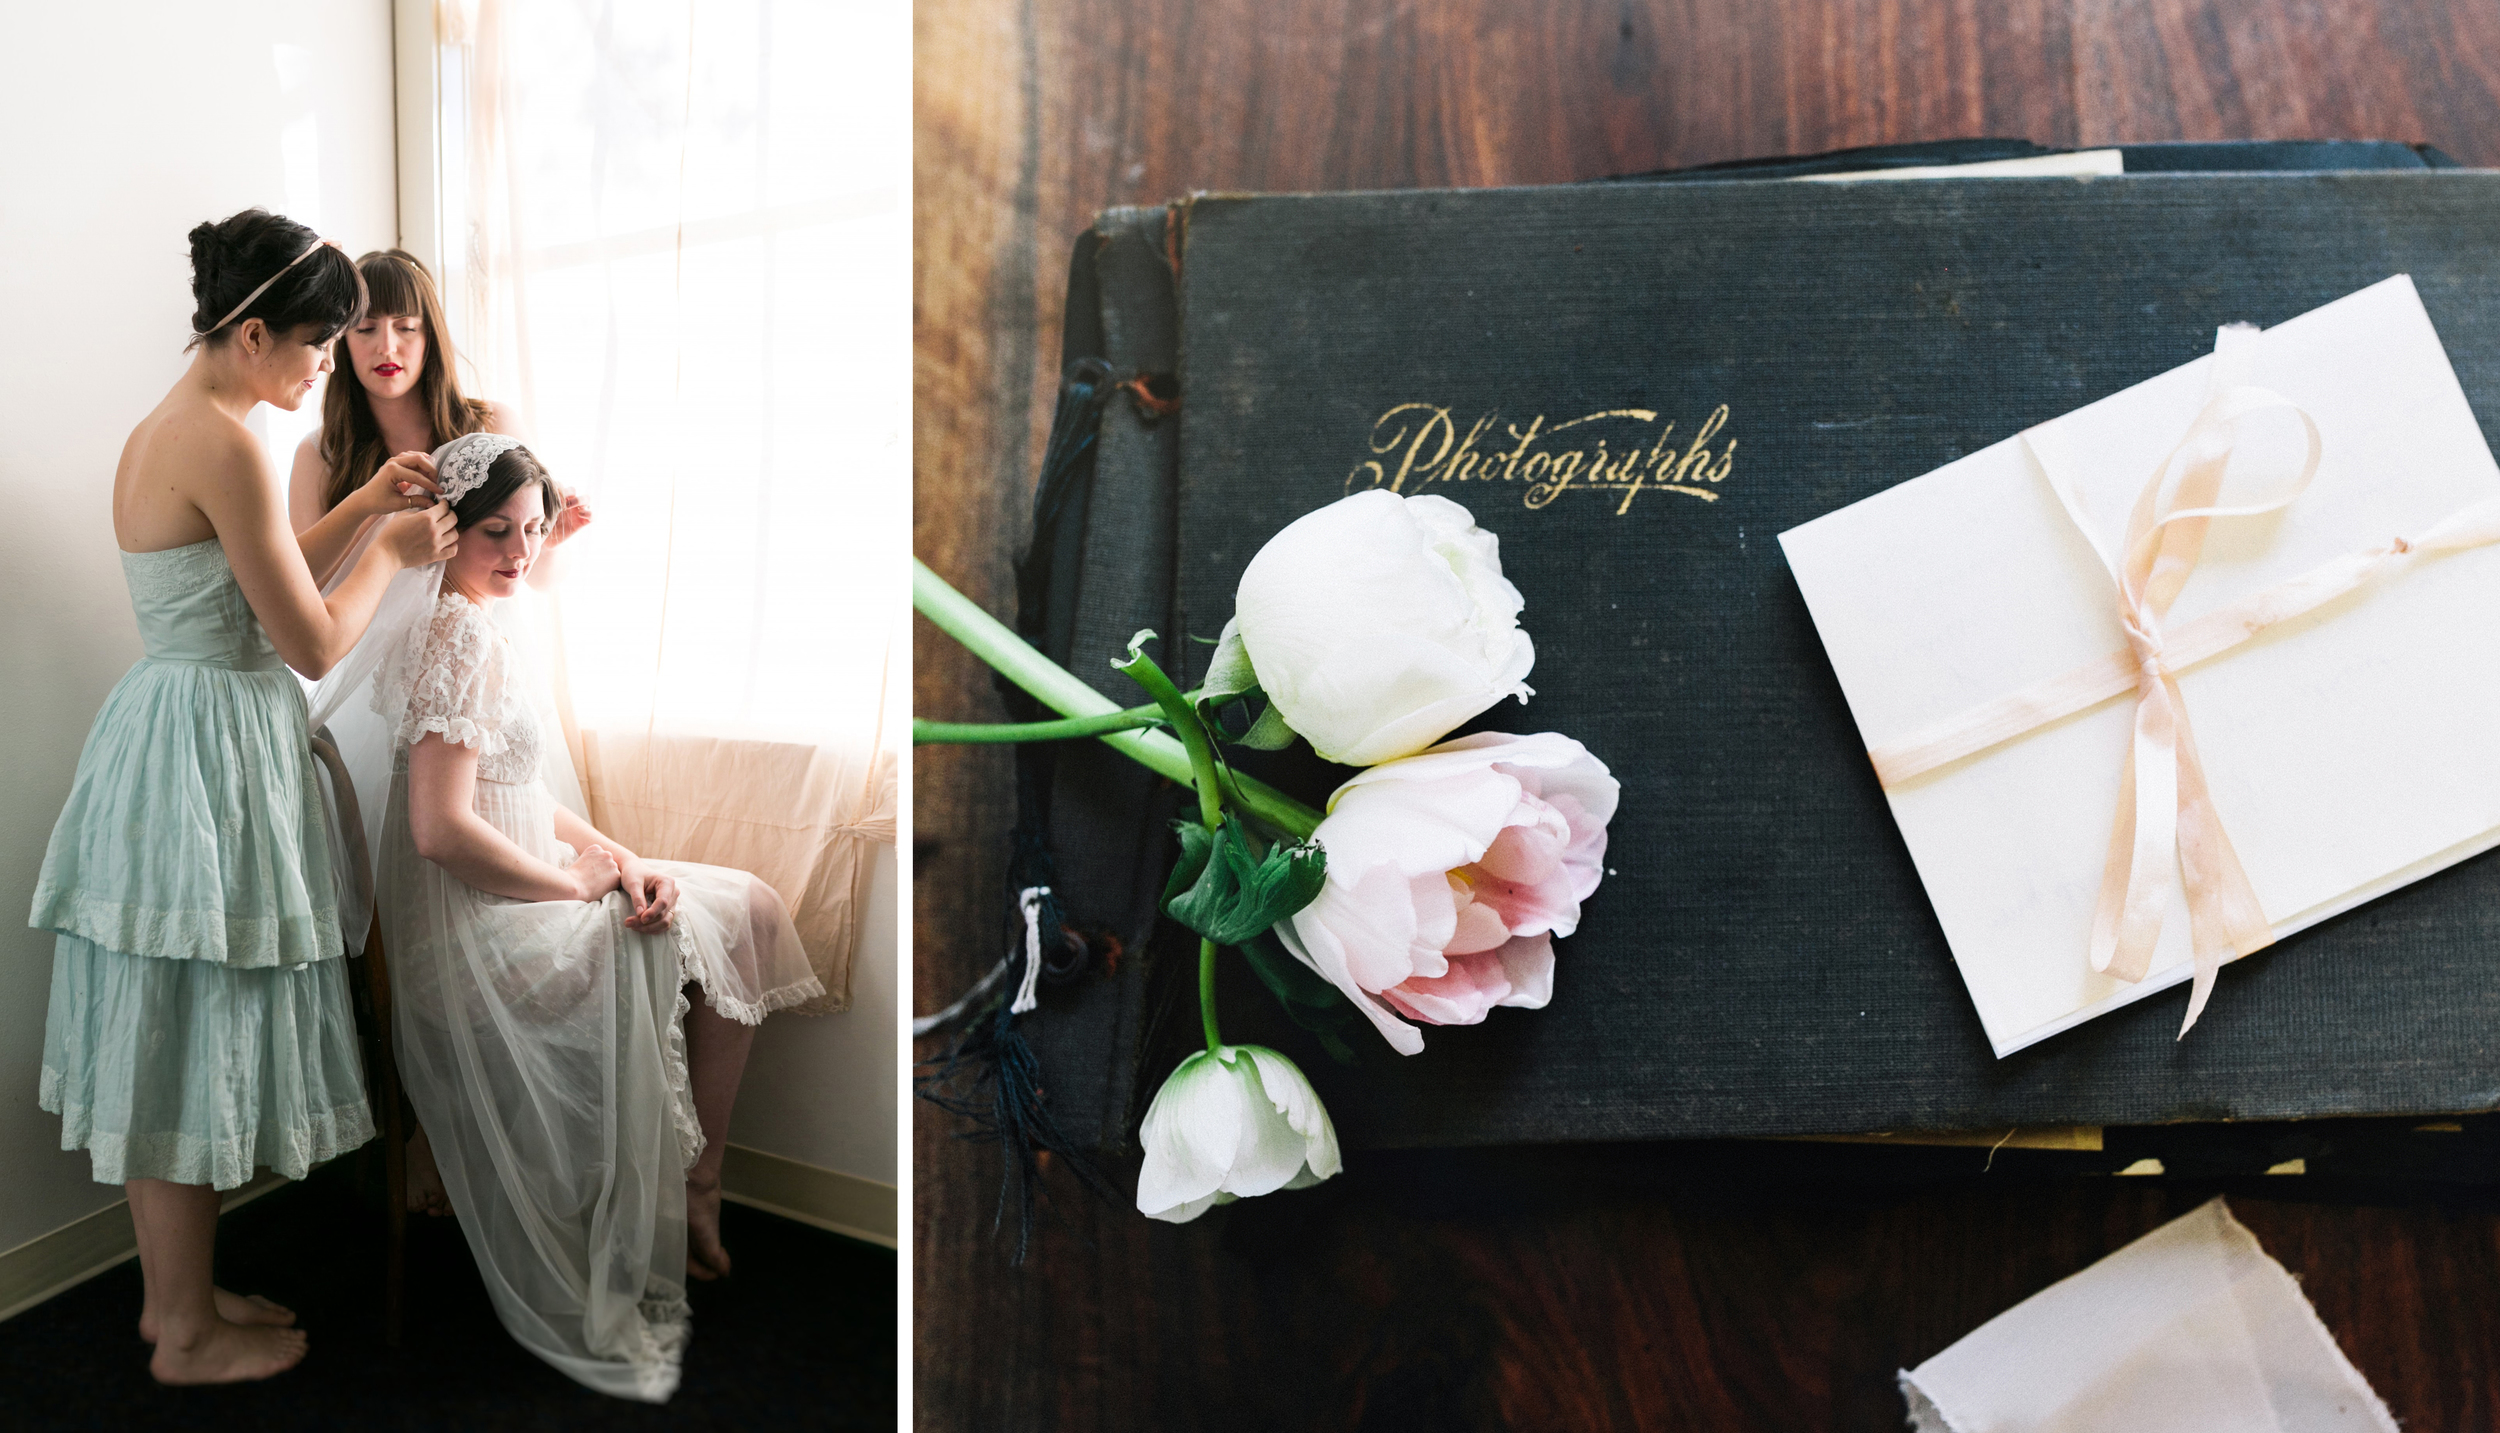 Valentines Bride and Her Bridesmaids  Styled Session  Hurtienne Photography  Portland Oregon Wedding Photographers (27)